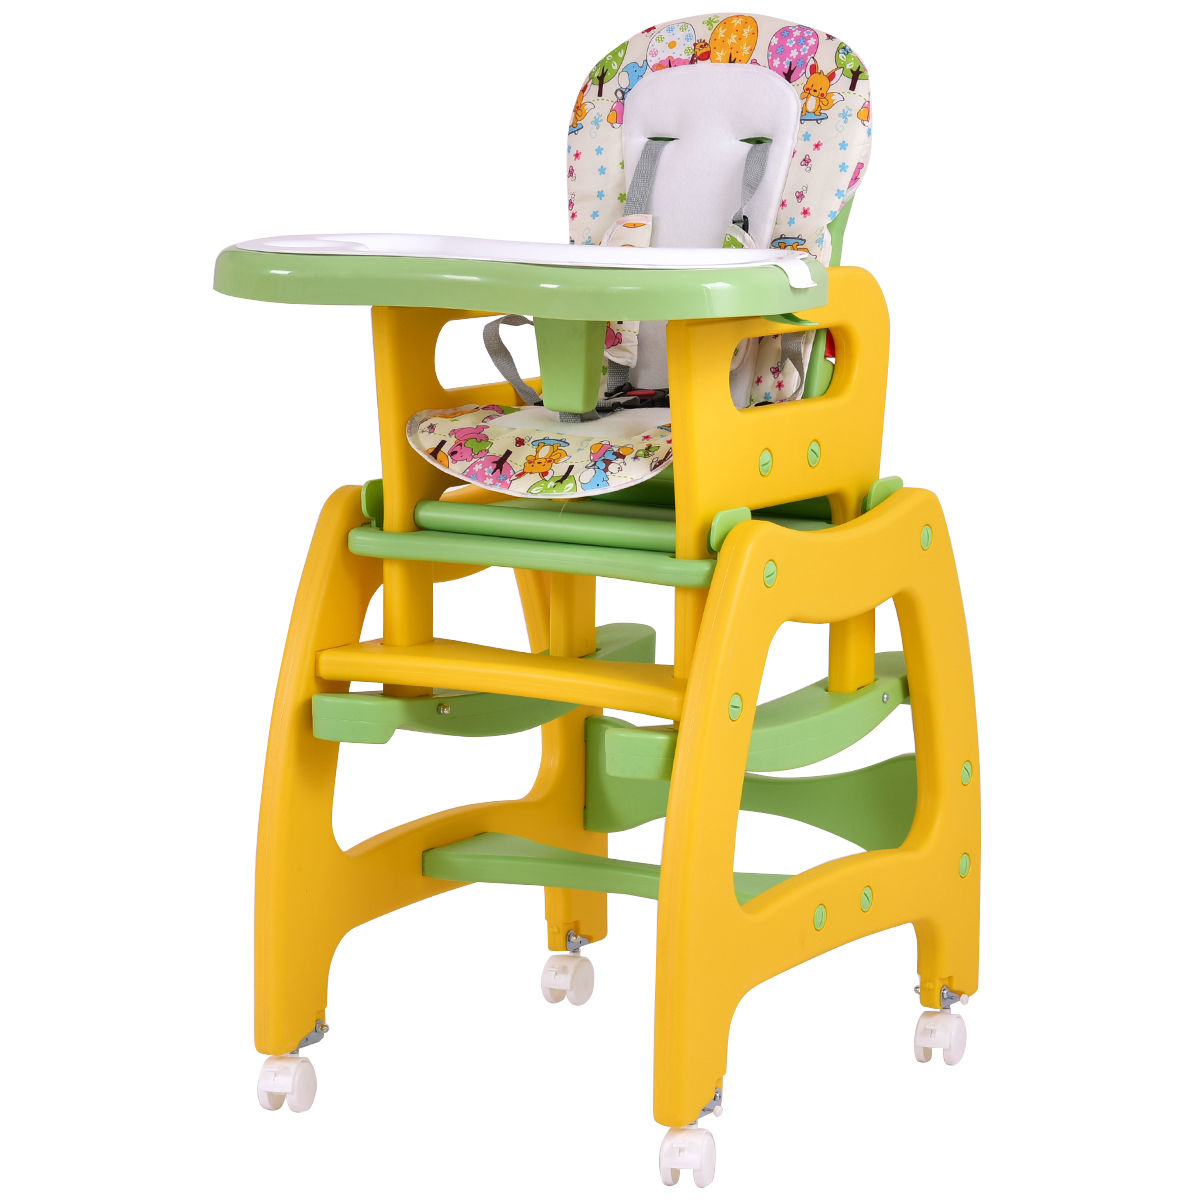 Wooden High Chairs For Babies Costway 3 In 1 Baby High Chair Convertible Play Table Seat Booster Toddler Feeding Tray